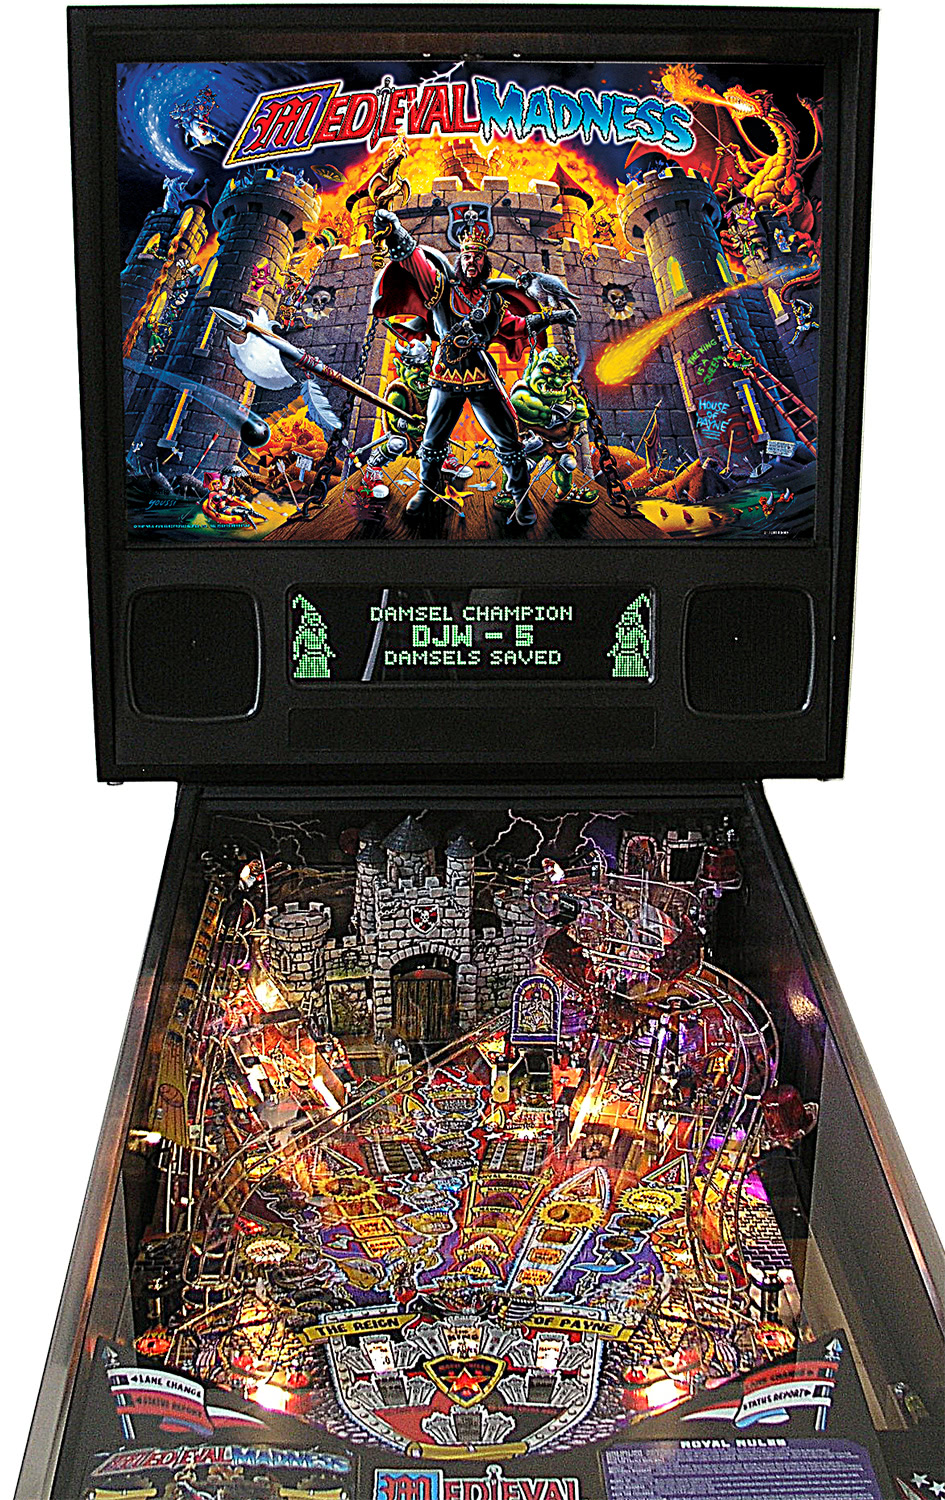 Medieval Madness Remake Pinball Machine Liberty Games